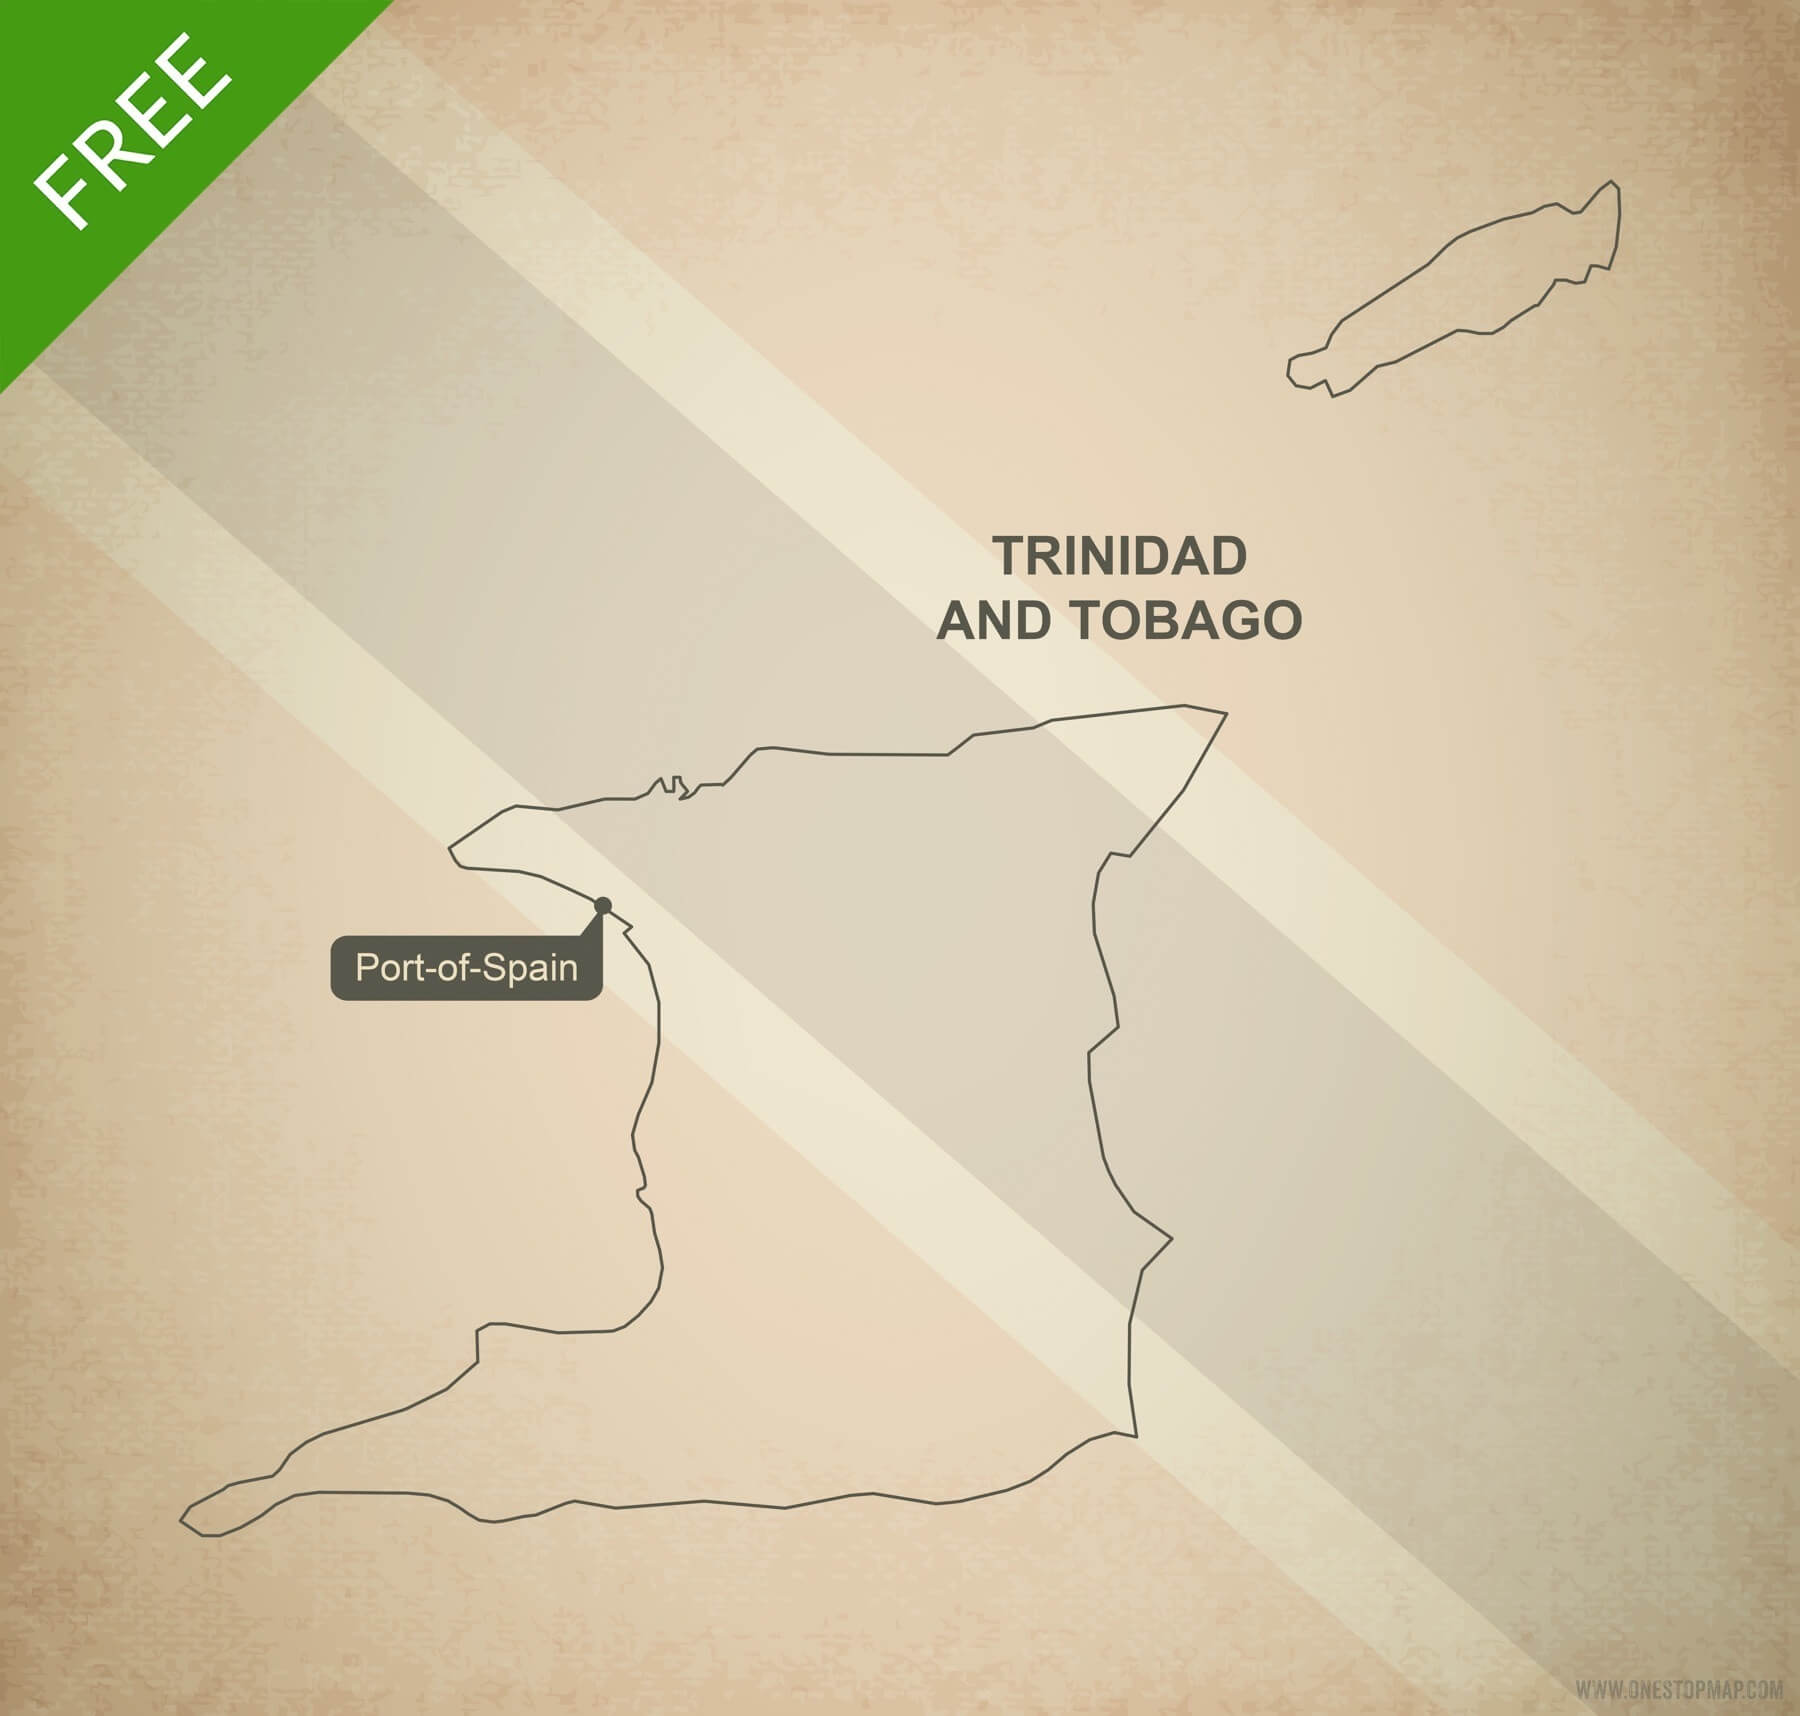 Free vector map of Trinidad and Tobago outline